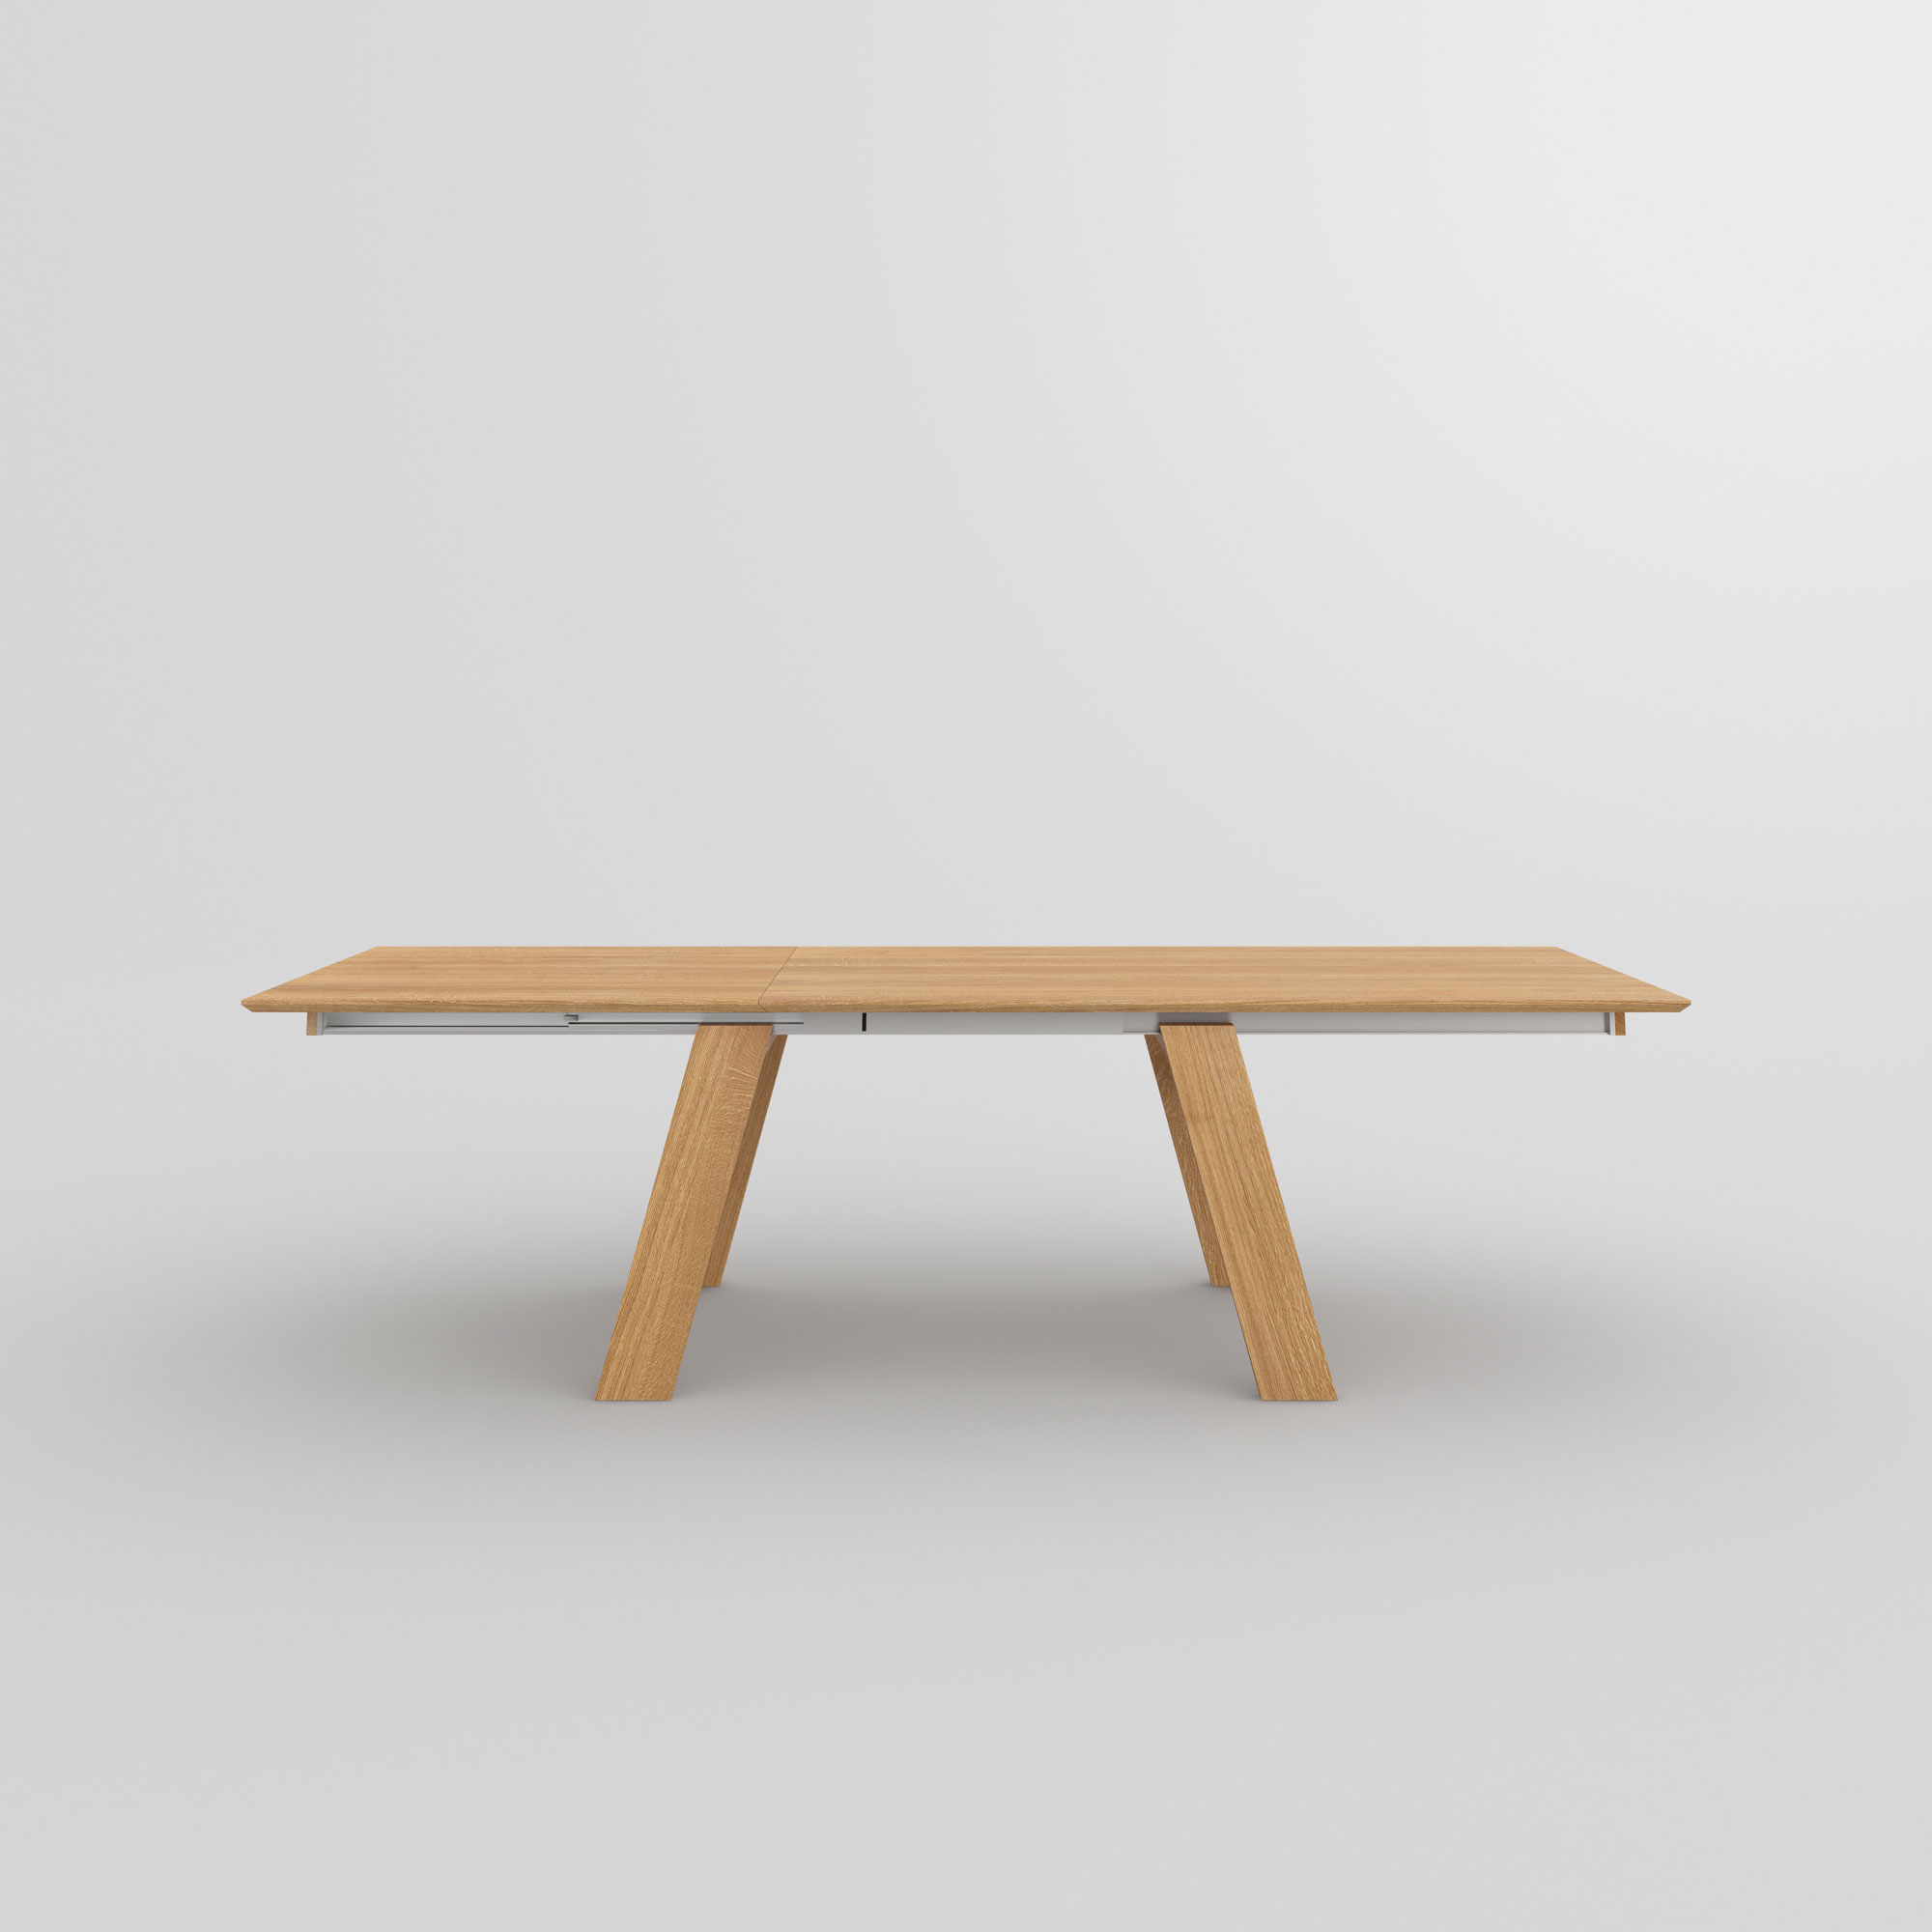 Solid Wood Extendable Table CULTUS BUTTERFLY cam2 custom made in solid wood by vitamin design